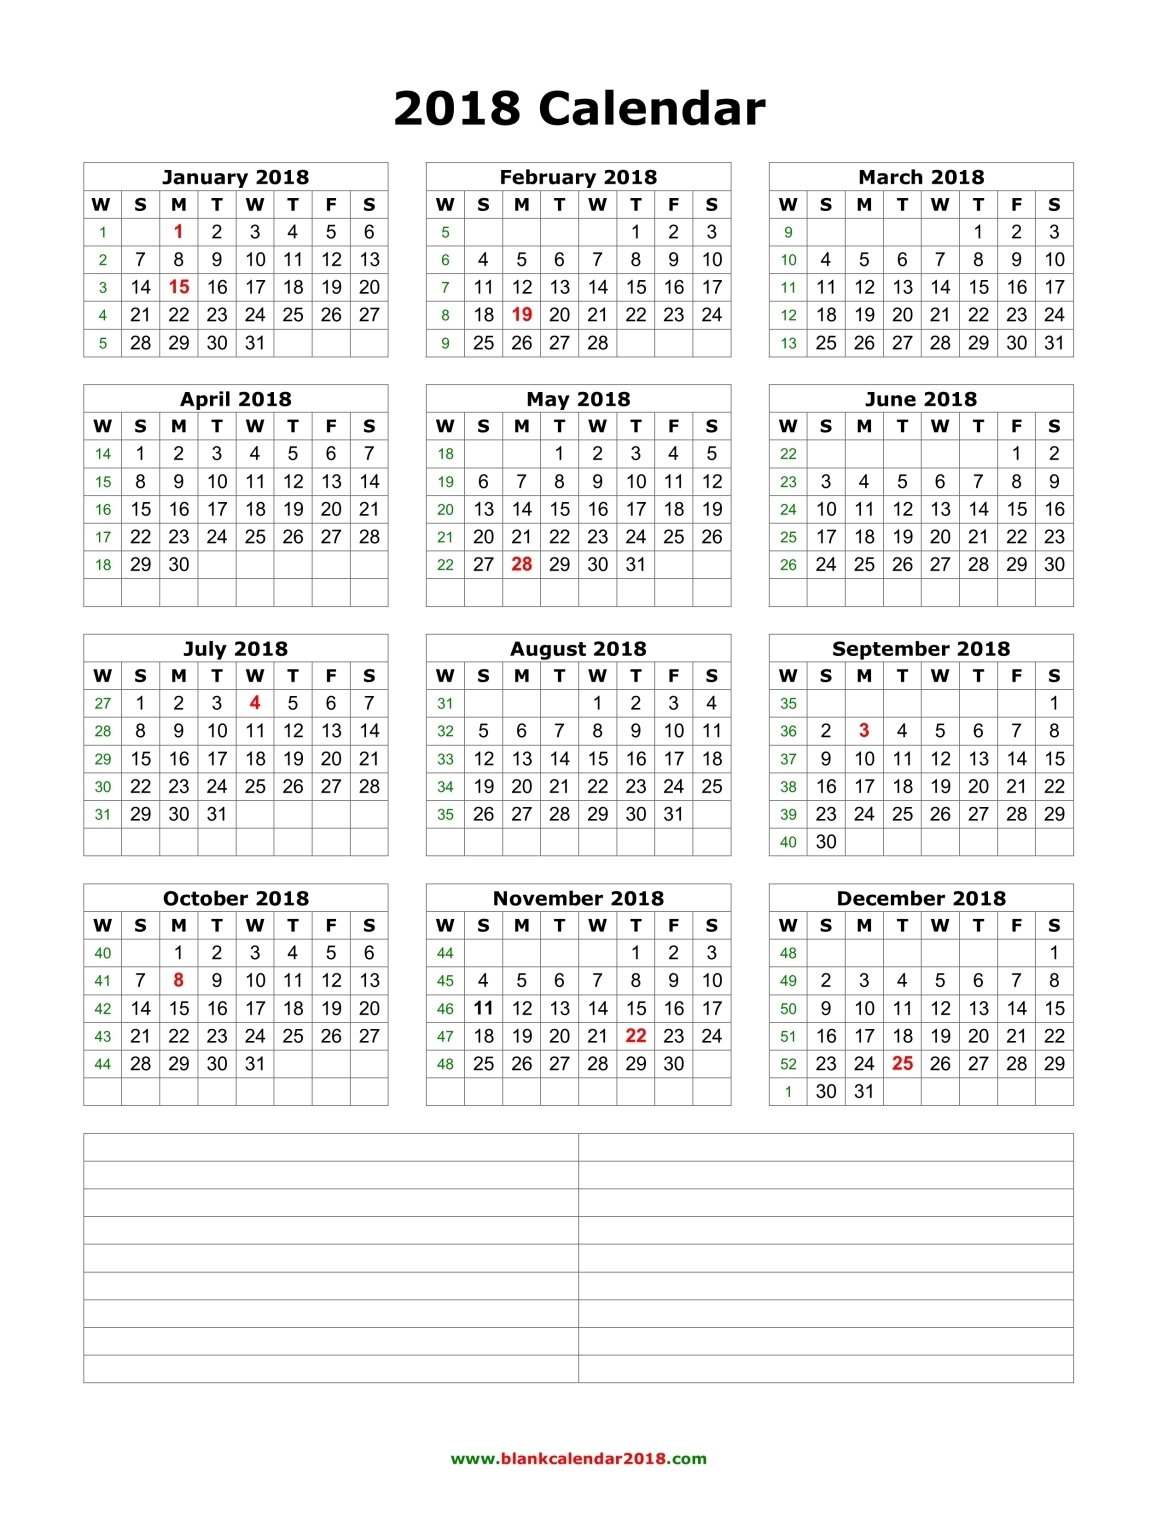 Blank Calendar 2018 intended for 12 Week Blank Calendar Printable